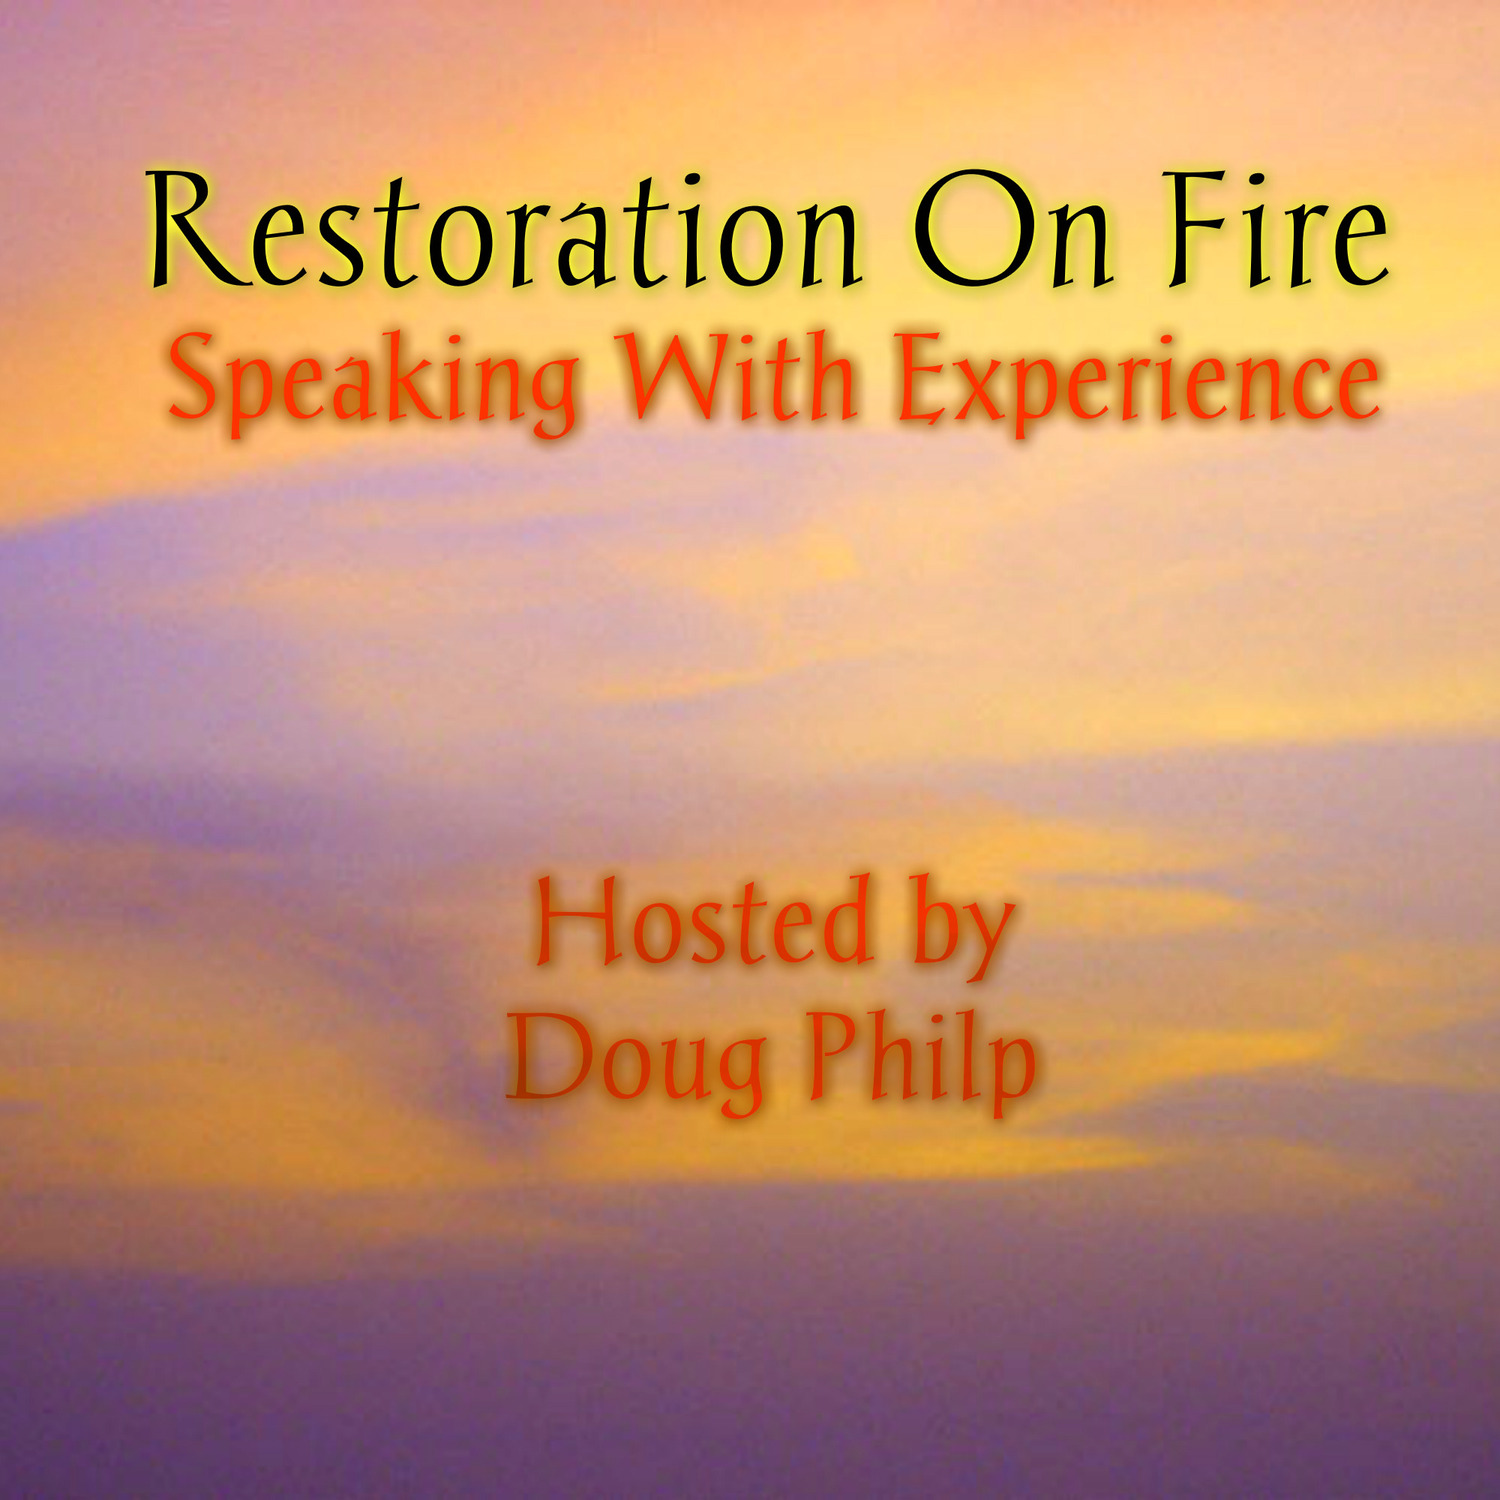 Restoration On Fire with Doug Philp